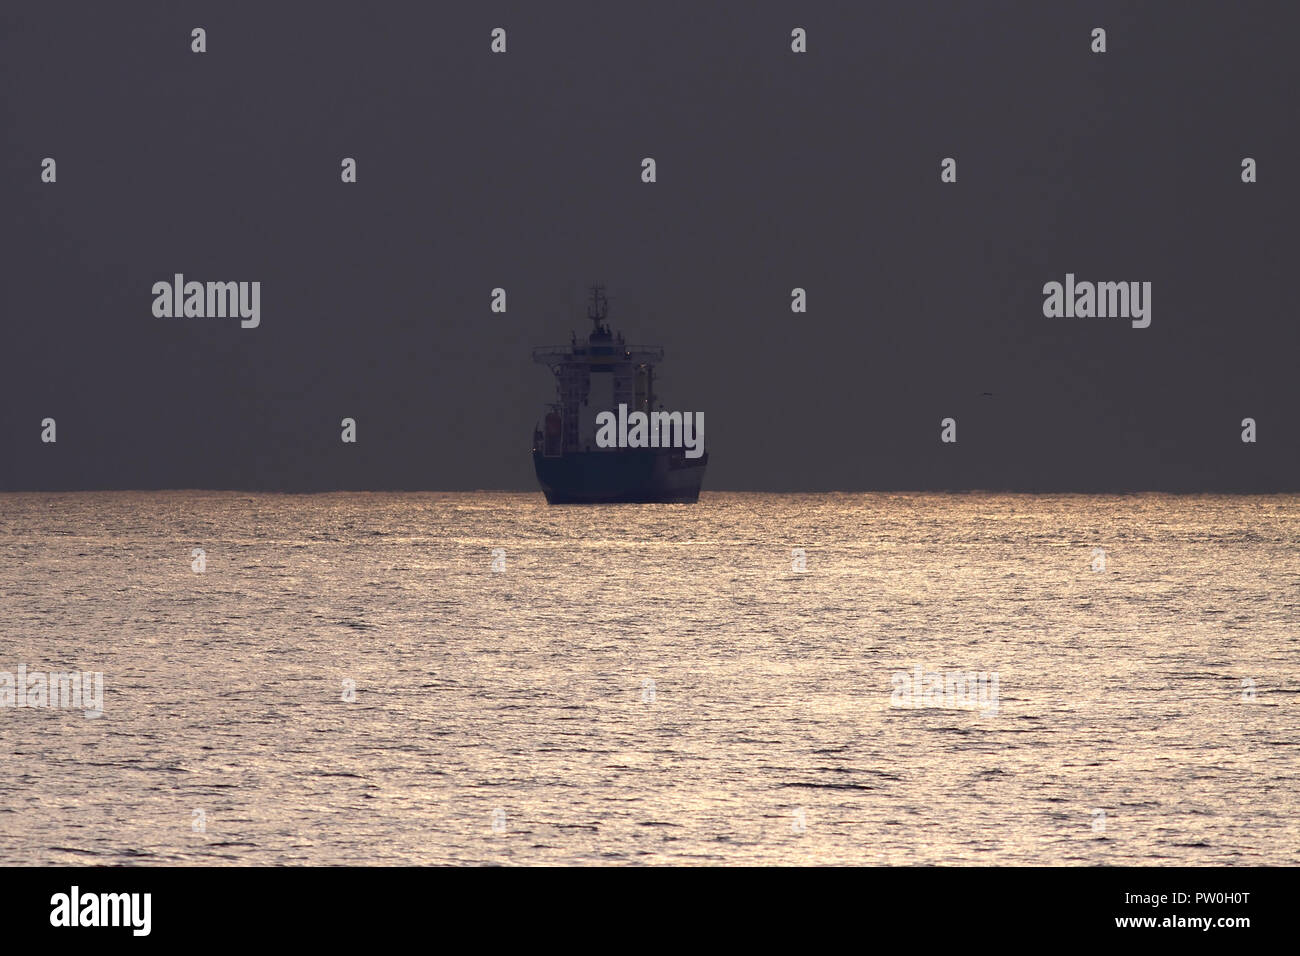 Commercial ship crossing the Portuguese coast at dusk - Stock Image